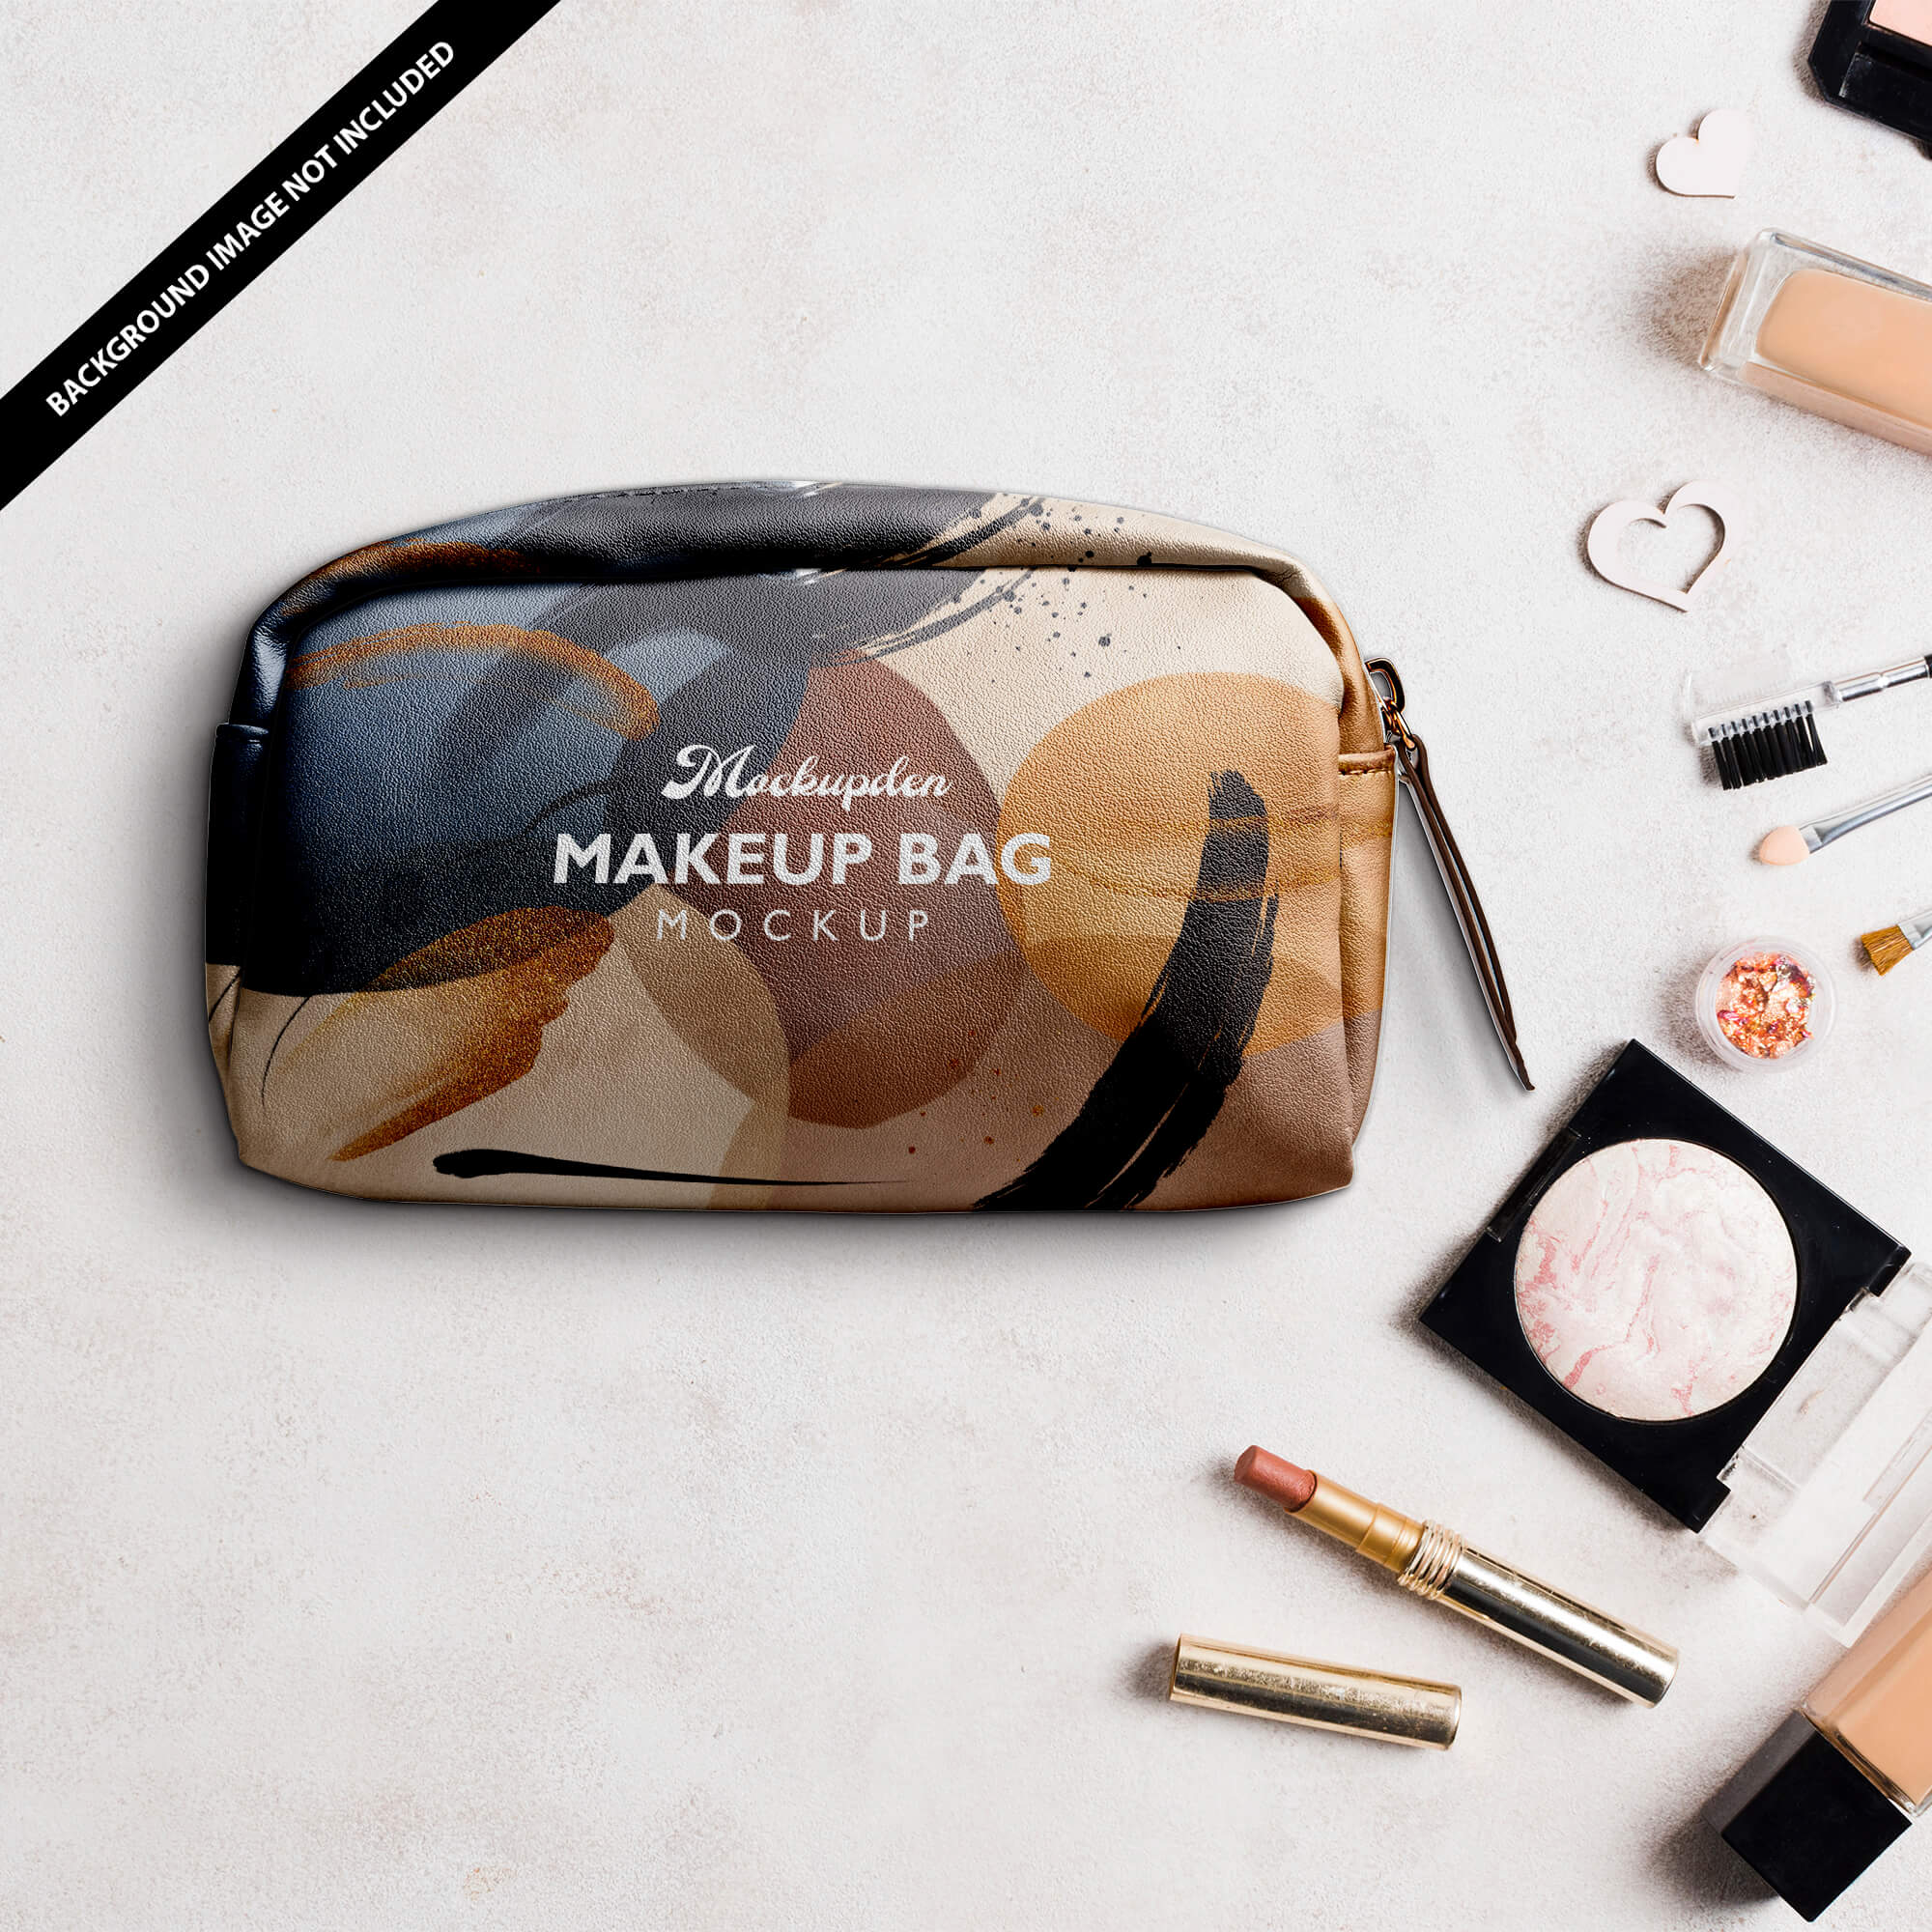 Free Makeup Bag Mockup PSD Template